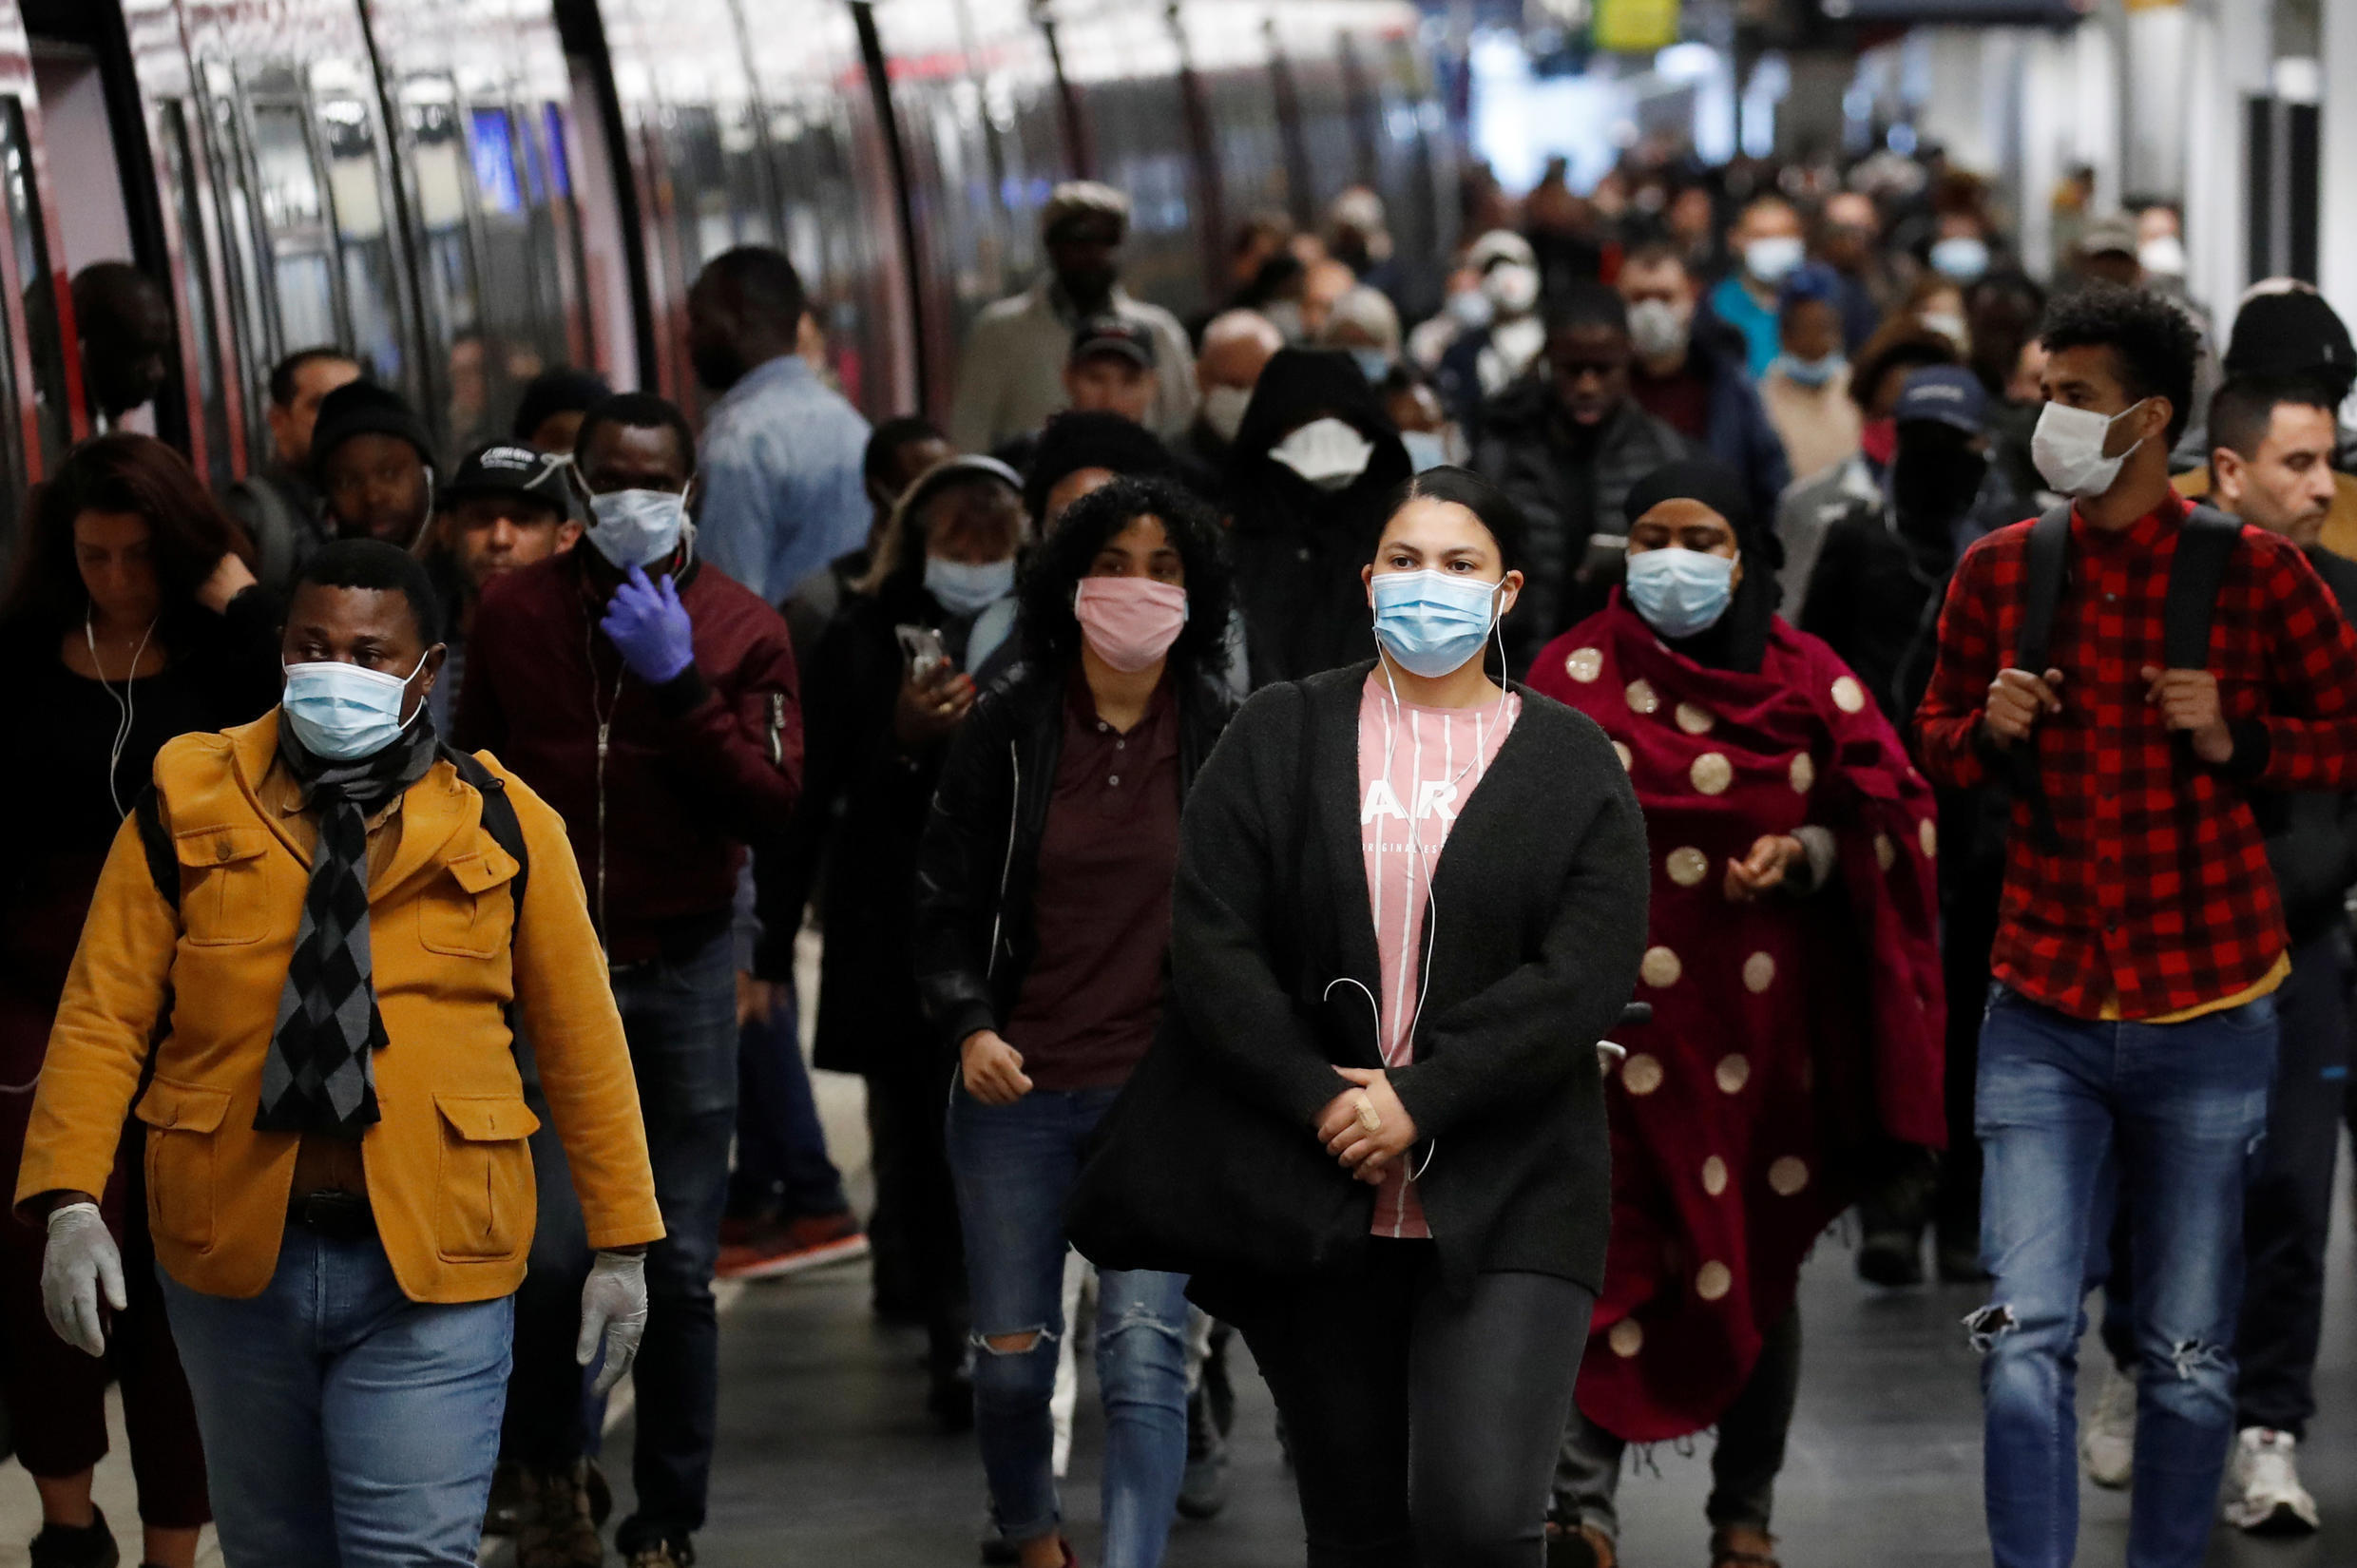 Commuters wearing protective face masks make their way along a suburban train platform as they arrive at the Gare du Nord RER station in Paris during a lockdown imposed to slow the spread of Covid-19 in France on April 27, 2020.